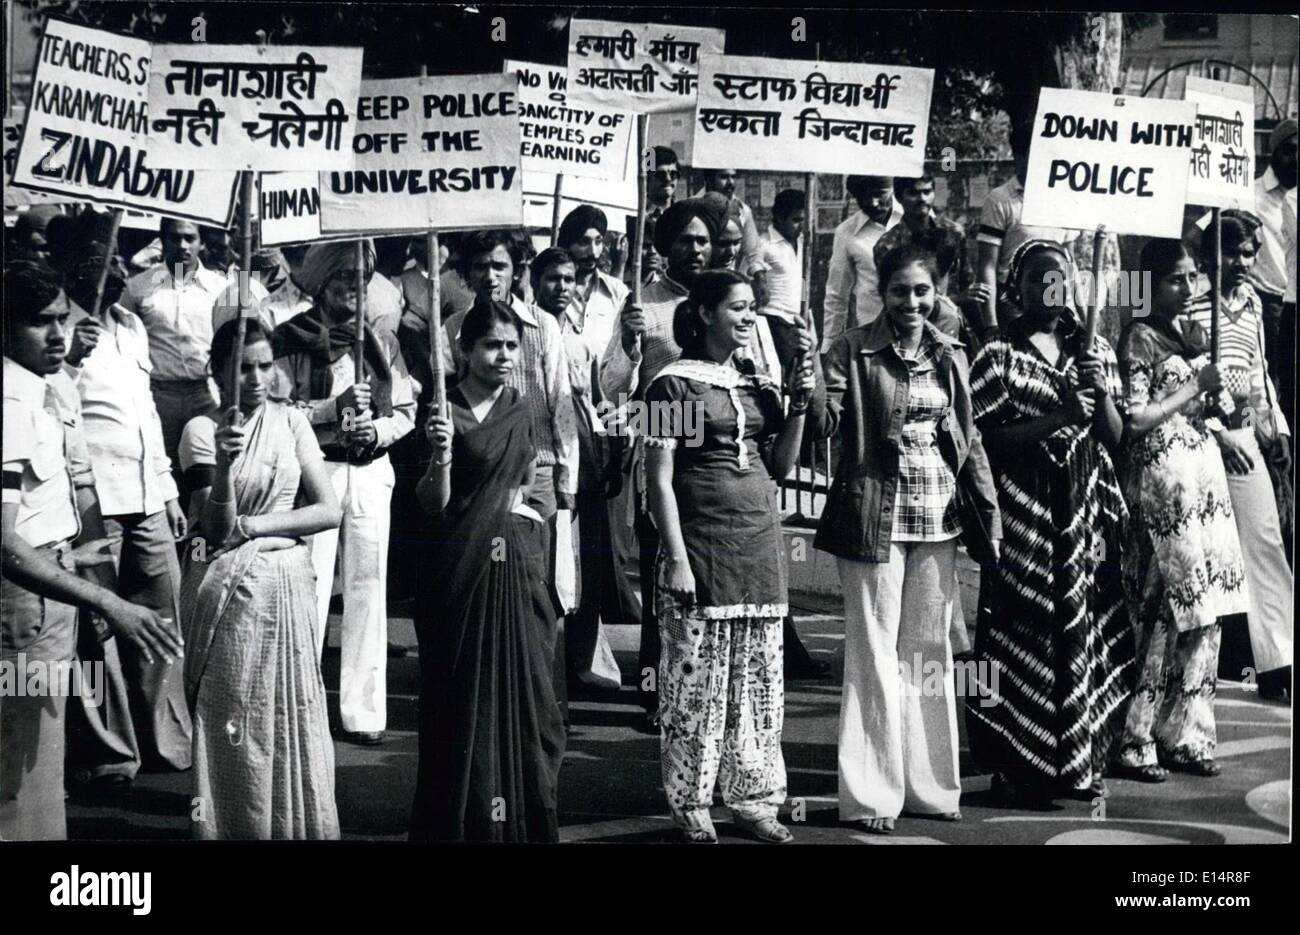 Apr. 18, 2012 - Khalsa college students marching to the Raj Bhawan in a peaceful procession to protest against police entry in the Delhi University Campus colleges in Delhi on Wednesday - November 14, 1979. - Stock Image